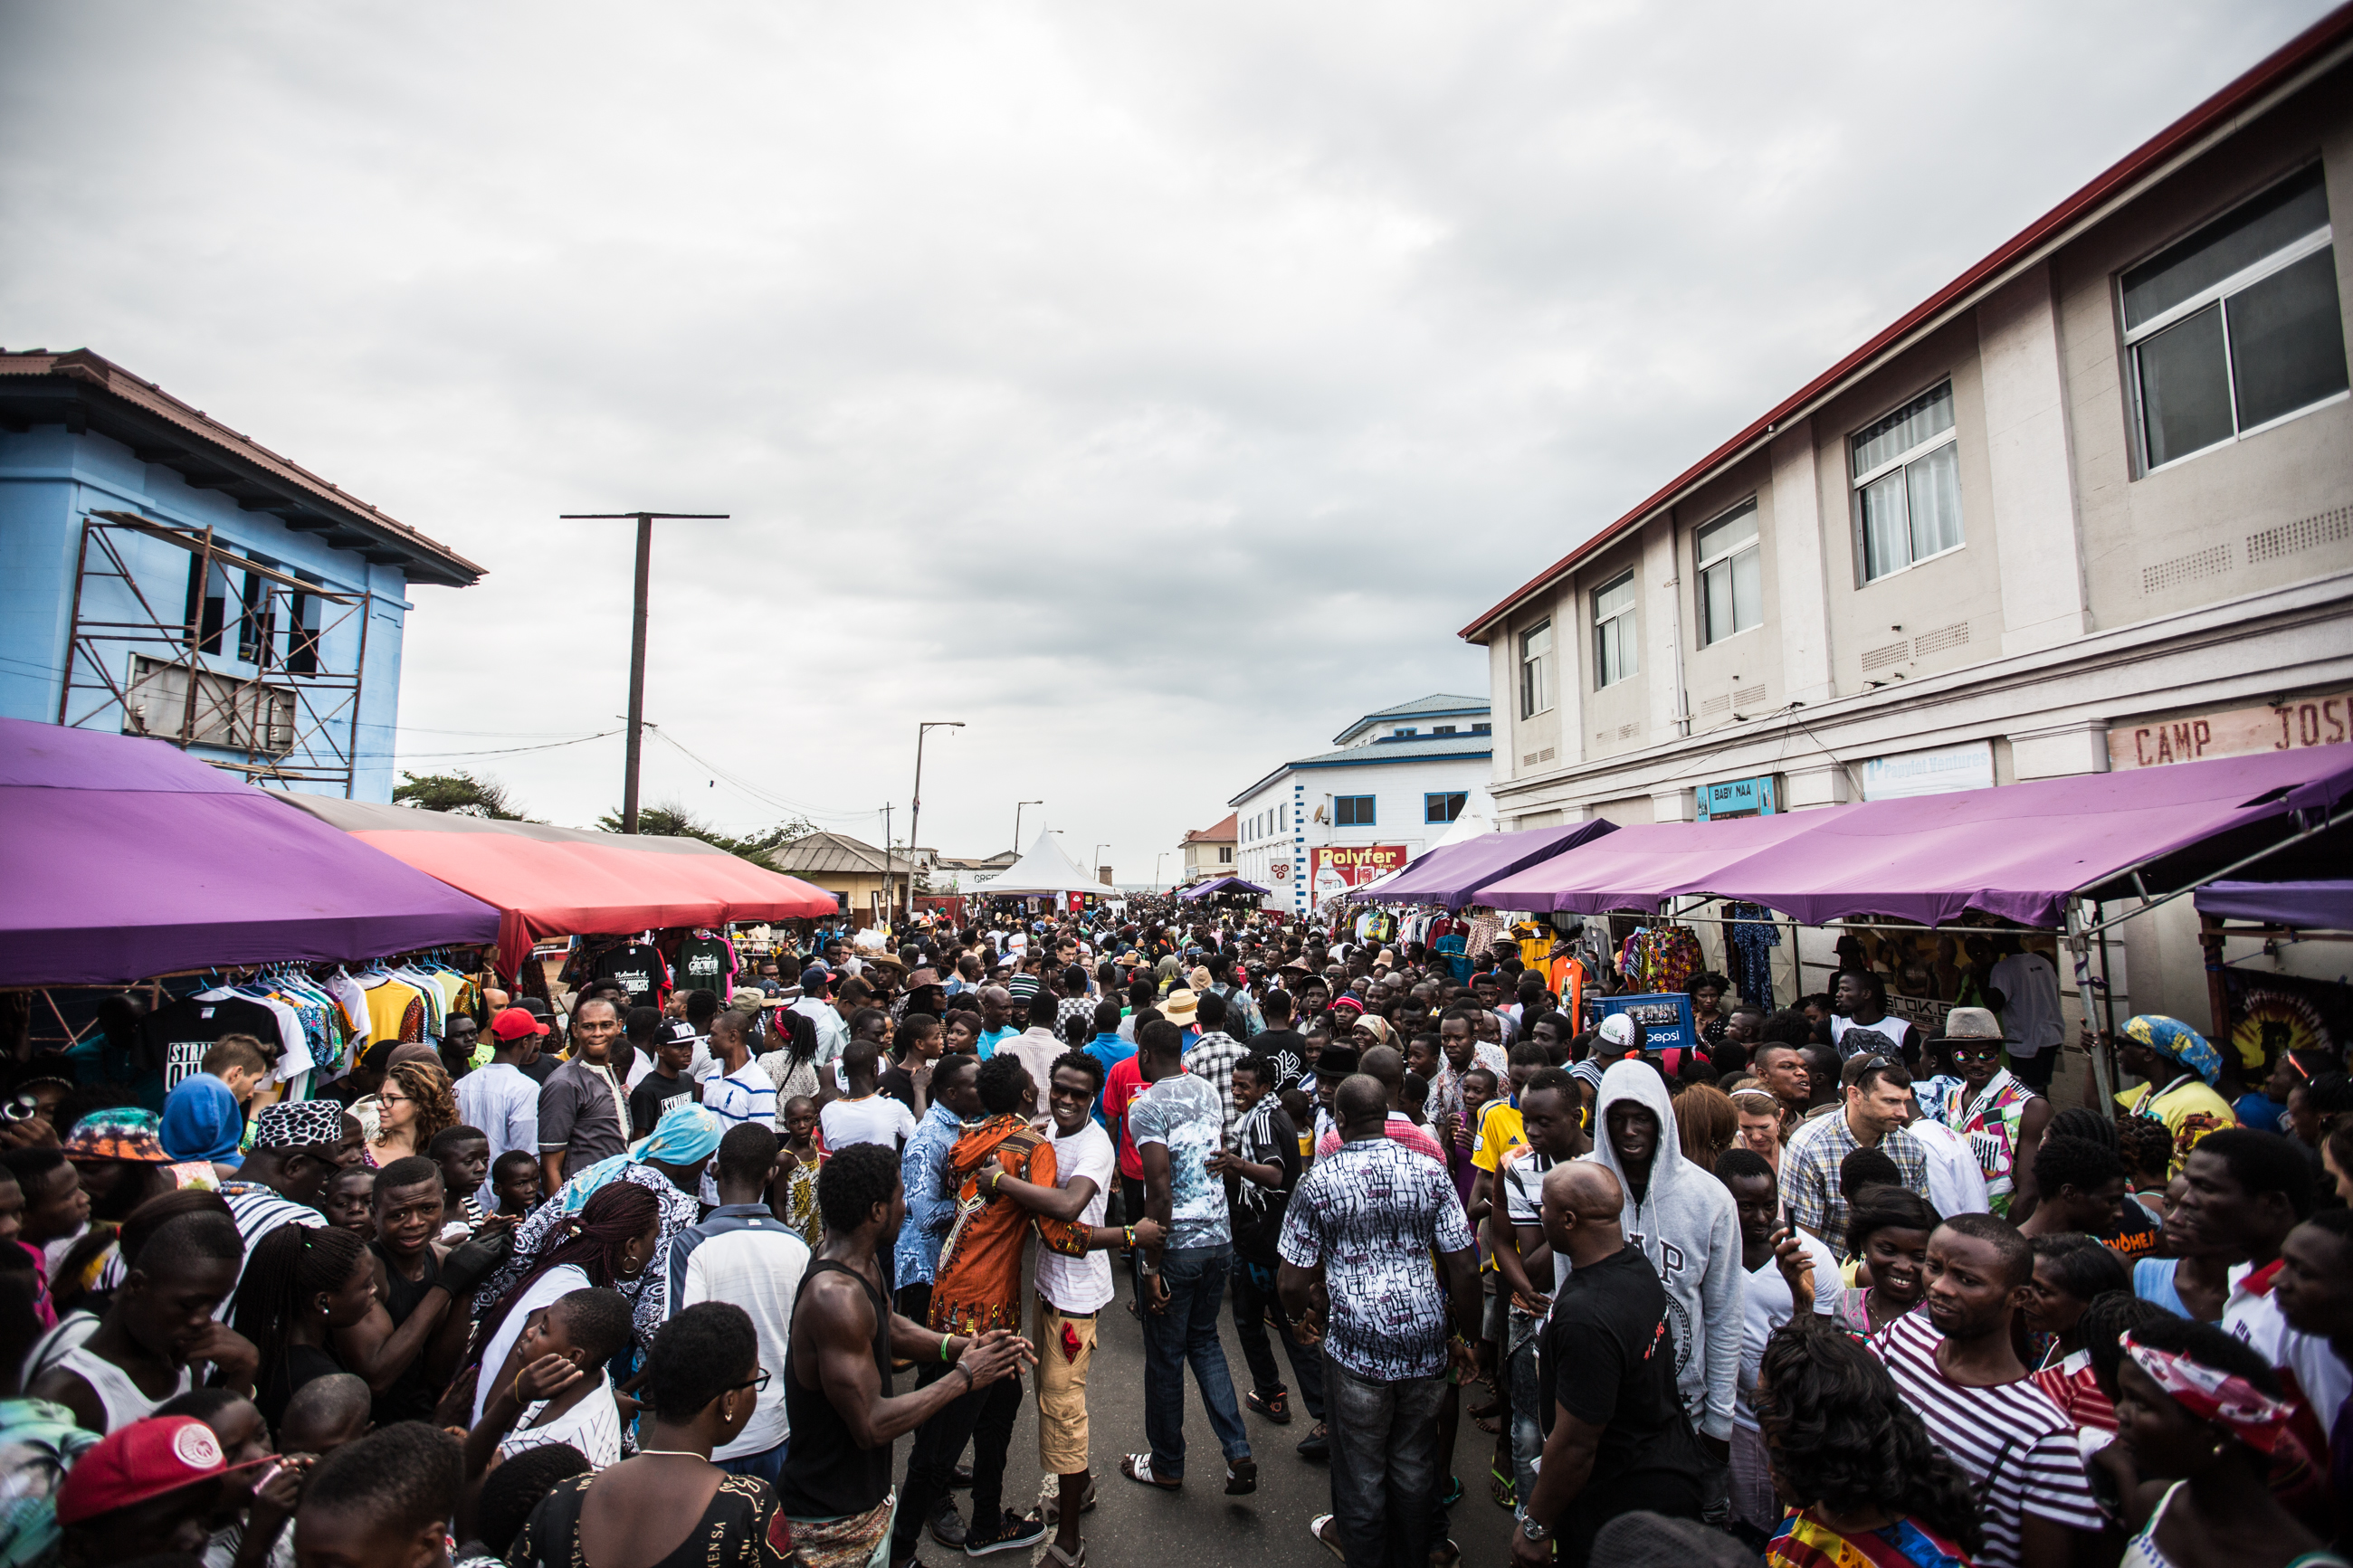 Over 10,000 people descended upon the streets of Jamestown neighbourhood for the Chale Wote Street Art Festival, more than in any in the previous 4 years of the festival. [Oualid Khelifi/Al Jazeera]